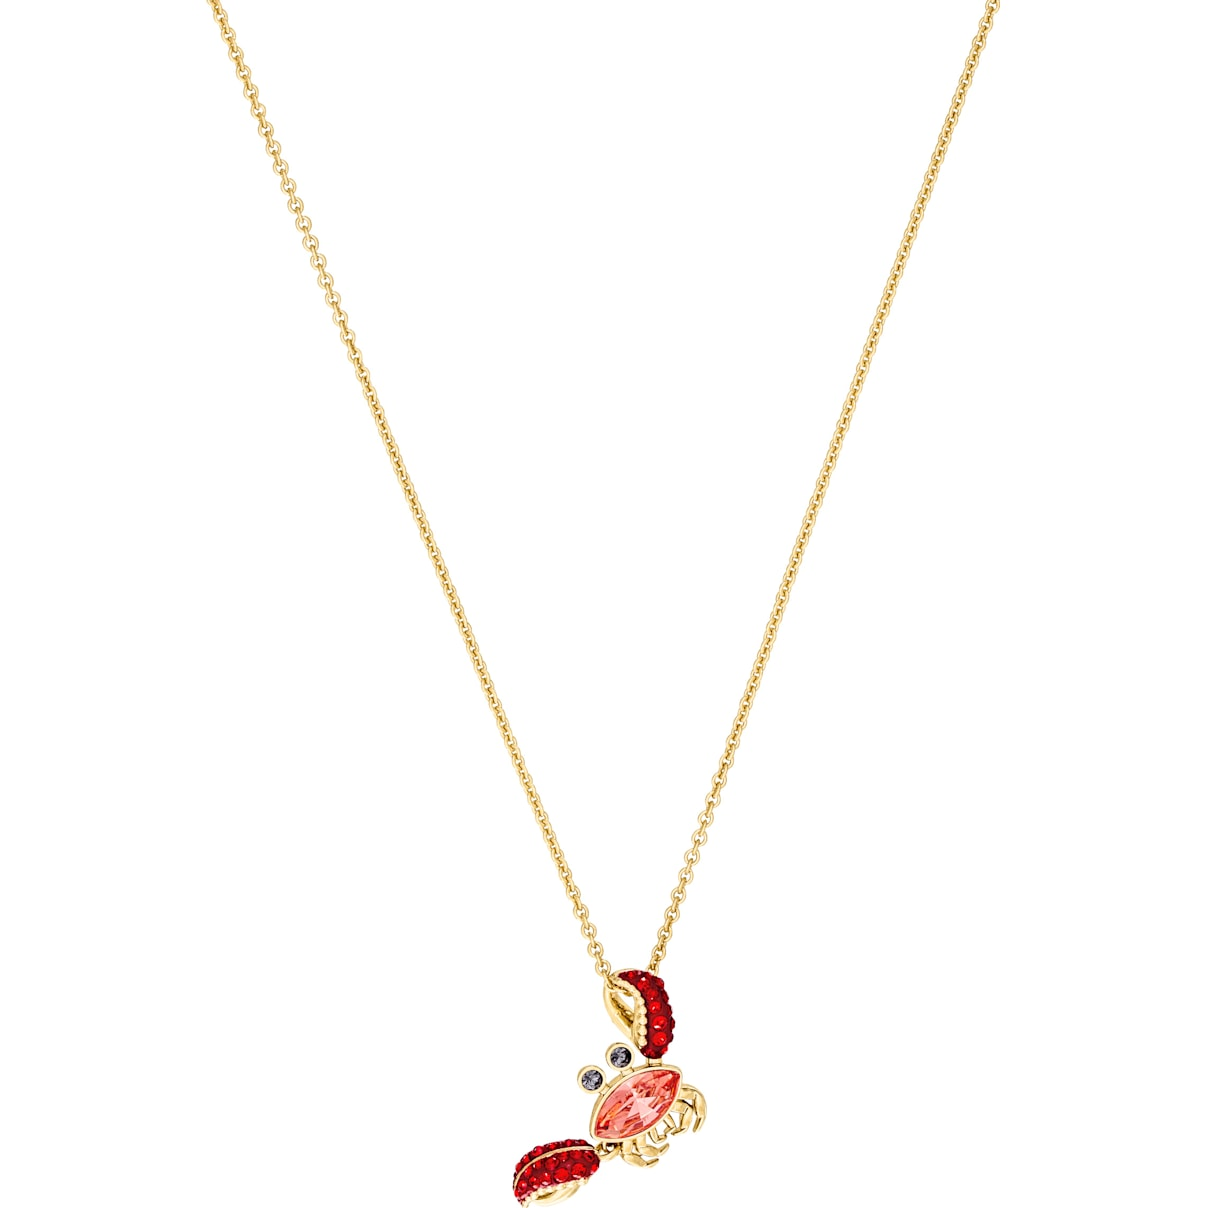 Swarovski Ocean Crab Pendant, Multi-colored, Gold-tone plated